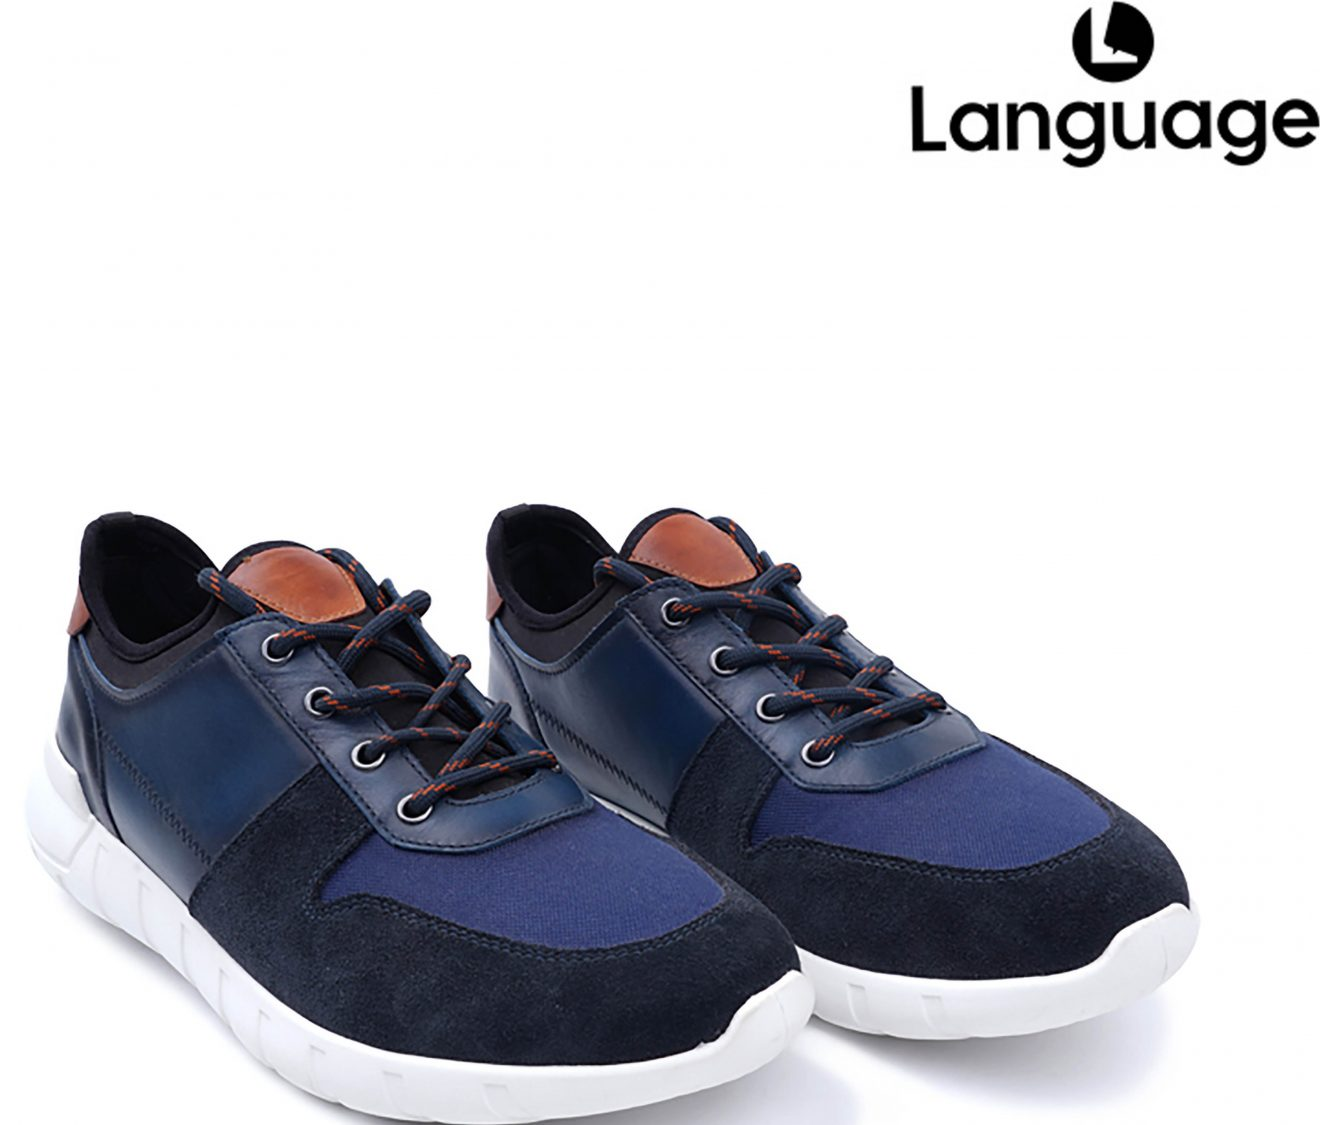 Leather Sneakers from Language Shoes